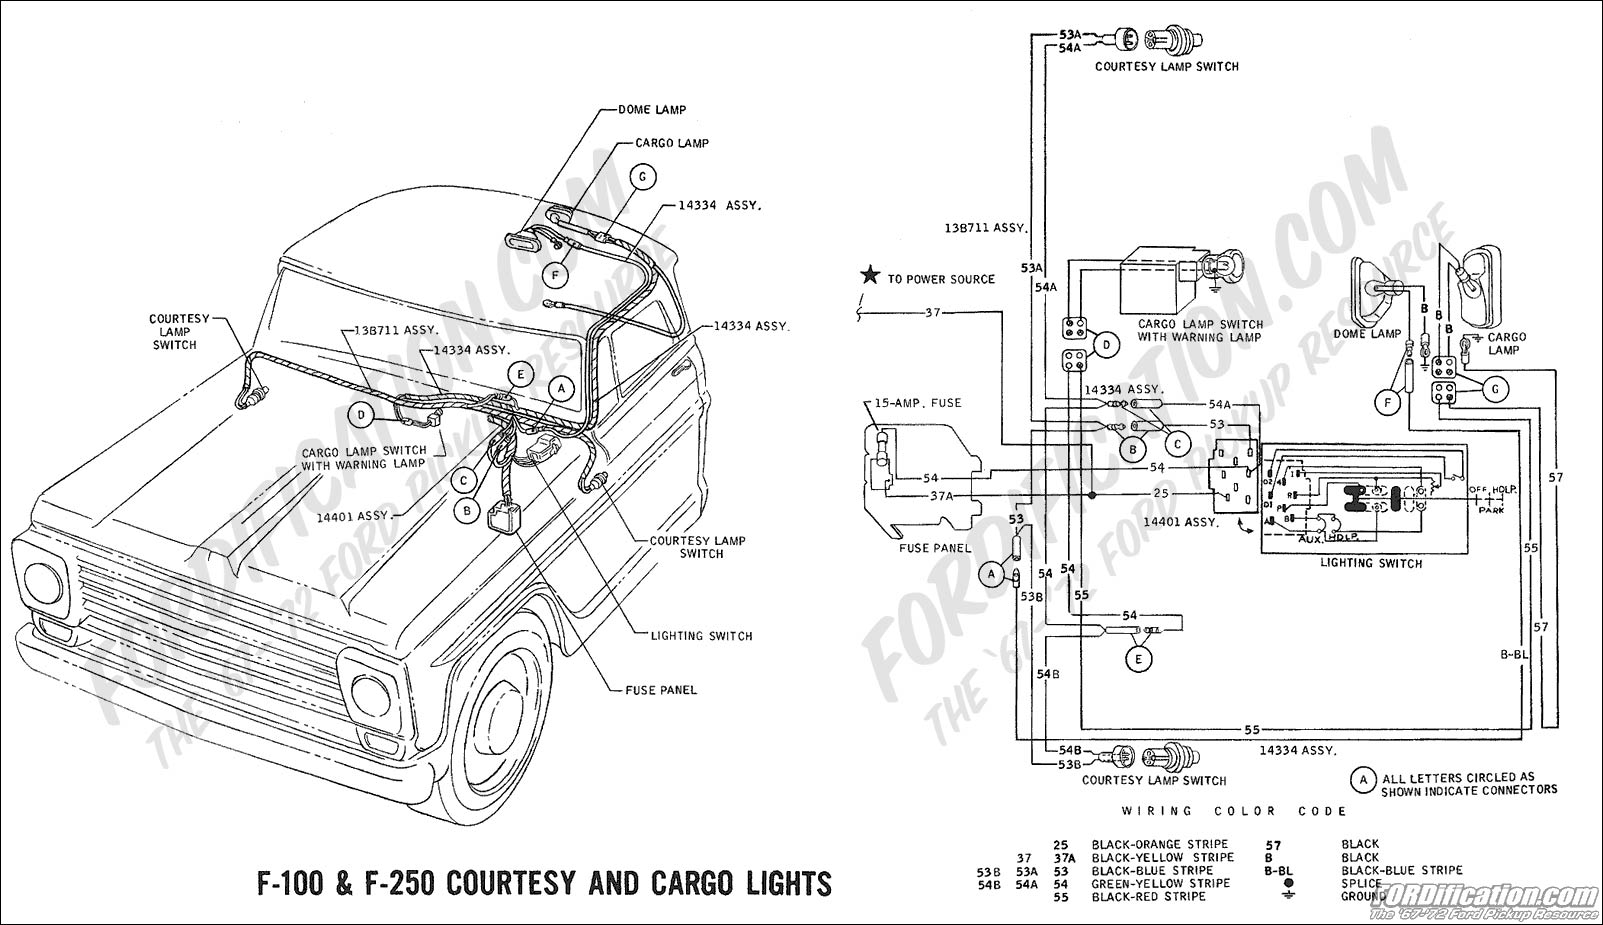 1973 ford f100 wiring harness diagram wiring diagram img 1970 Ford F100 Wiring Harness